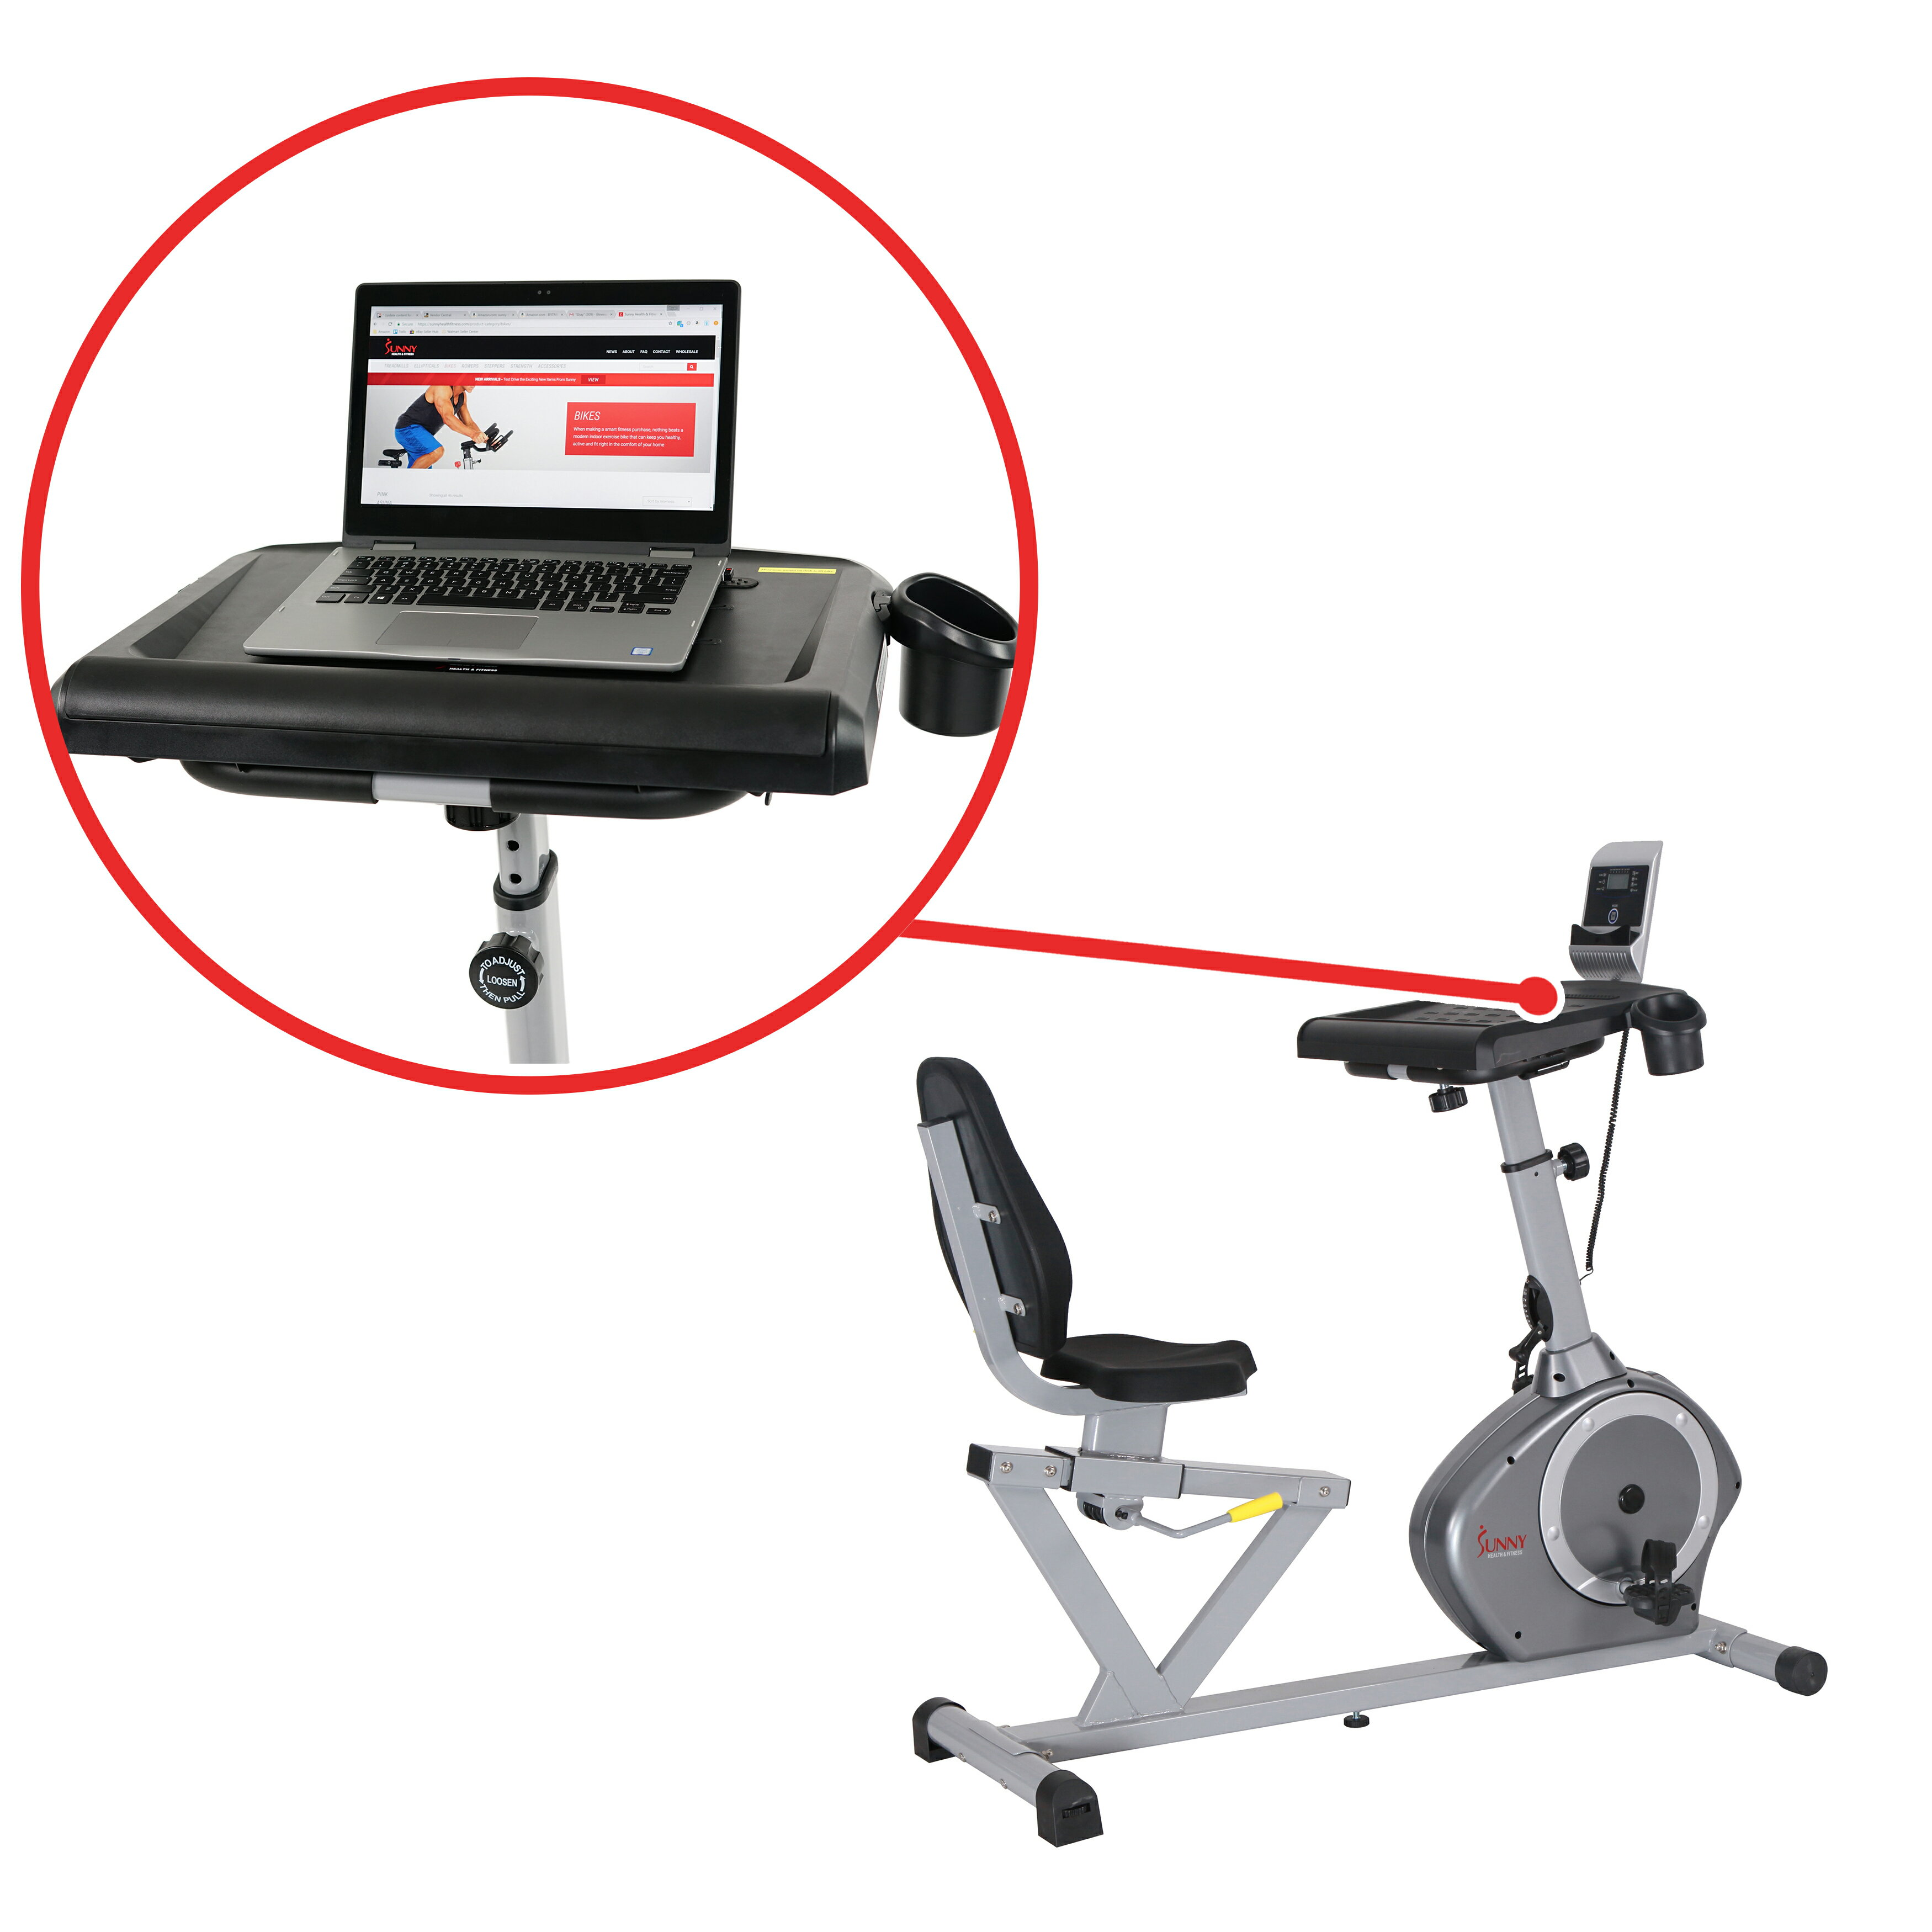 Sunny Health Fitness Magnetic Rebent Desk Exercise Bike 350lb High Weight Capacity Monitor